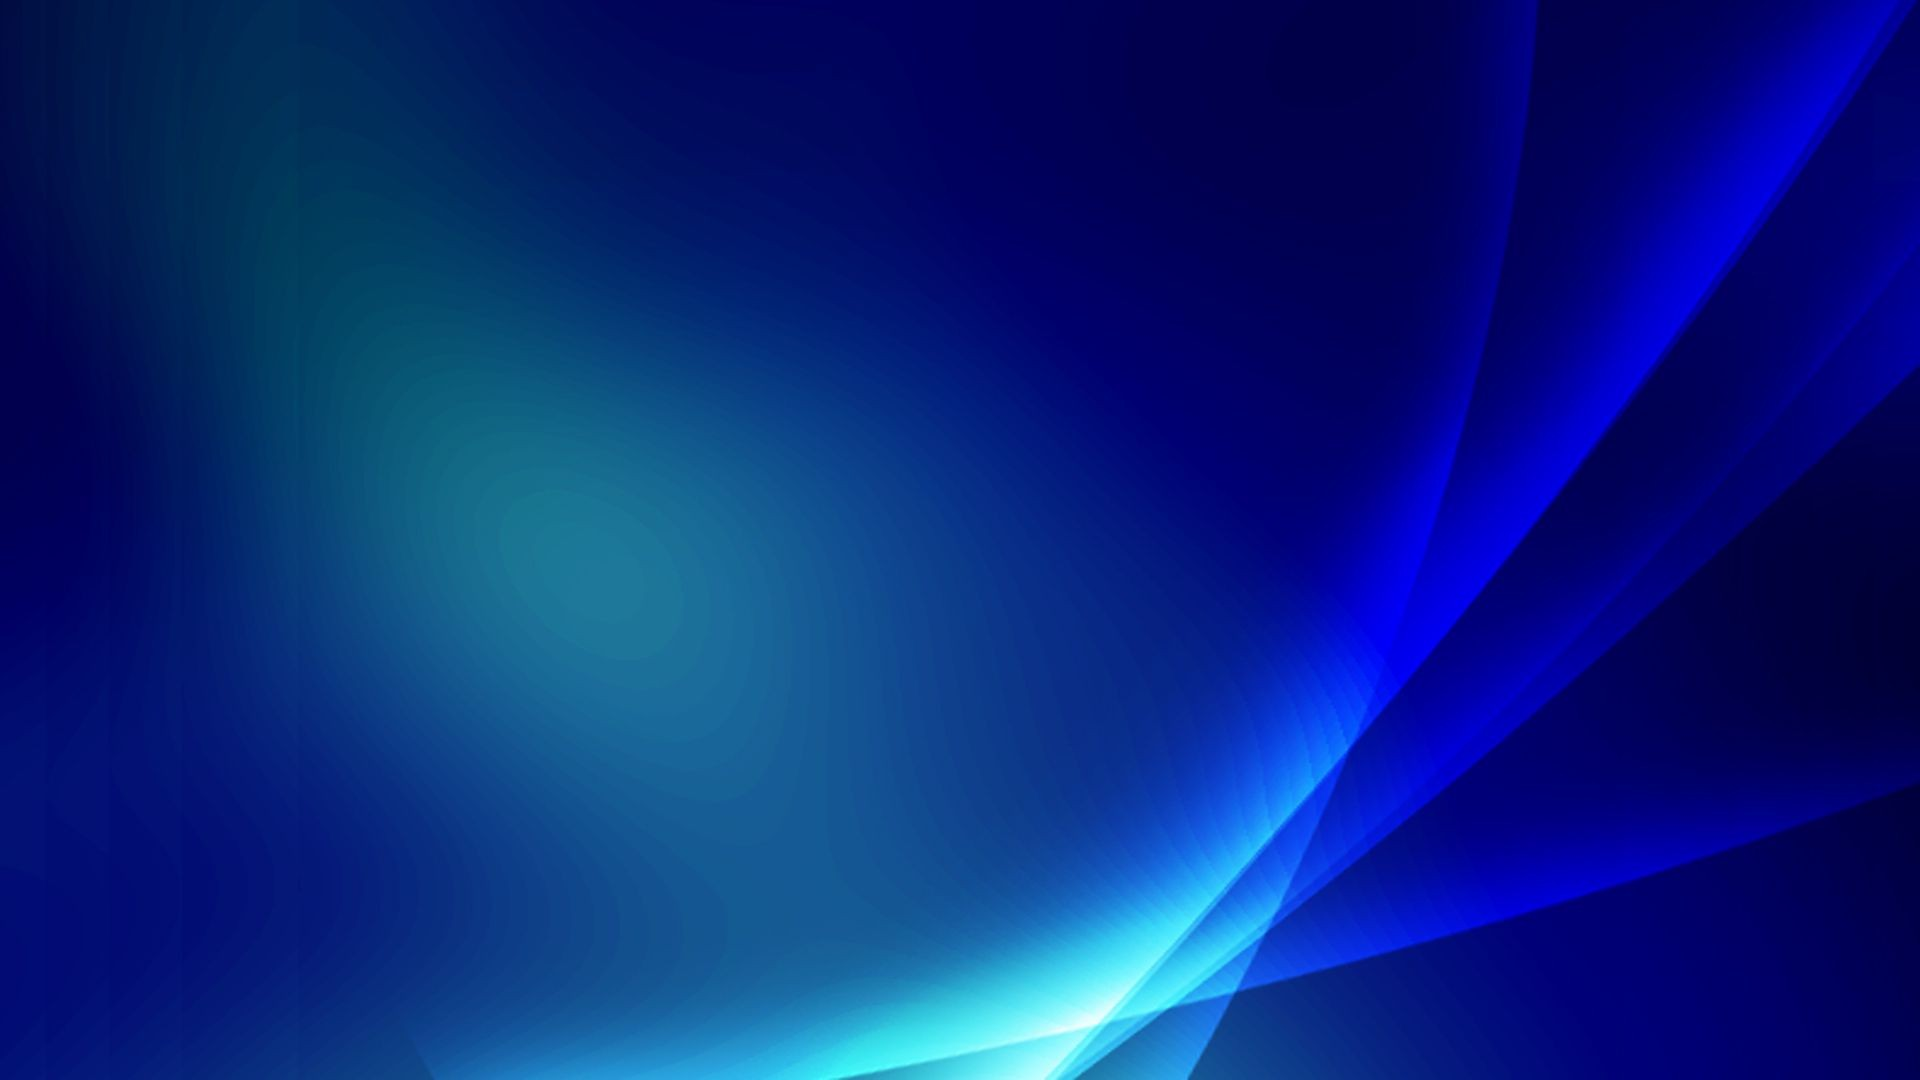 Royal Blue background \u00b7\u2460 Download free HD wallpapers for desktop, mobile, laptop in any